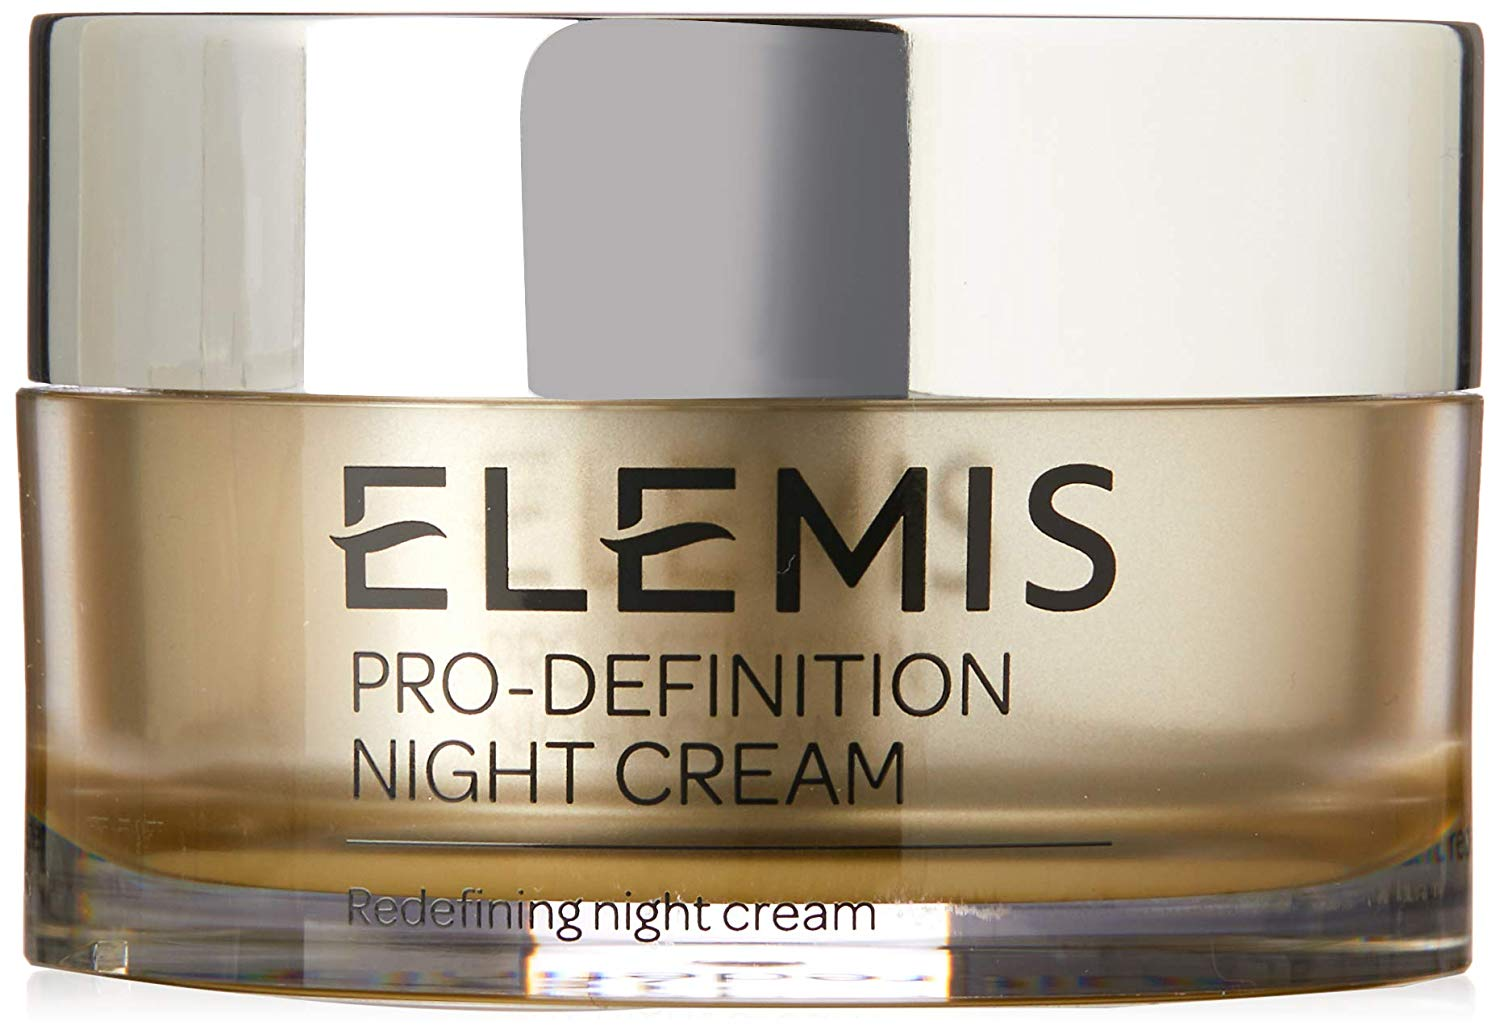 elemis night cream, elemis night cream gift, self care gift guide